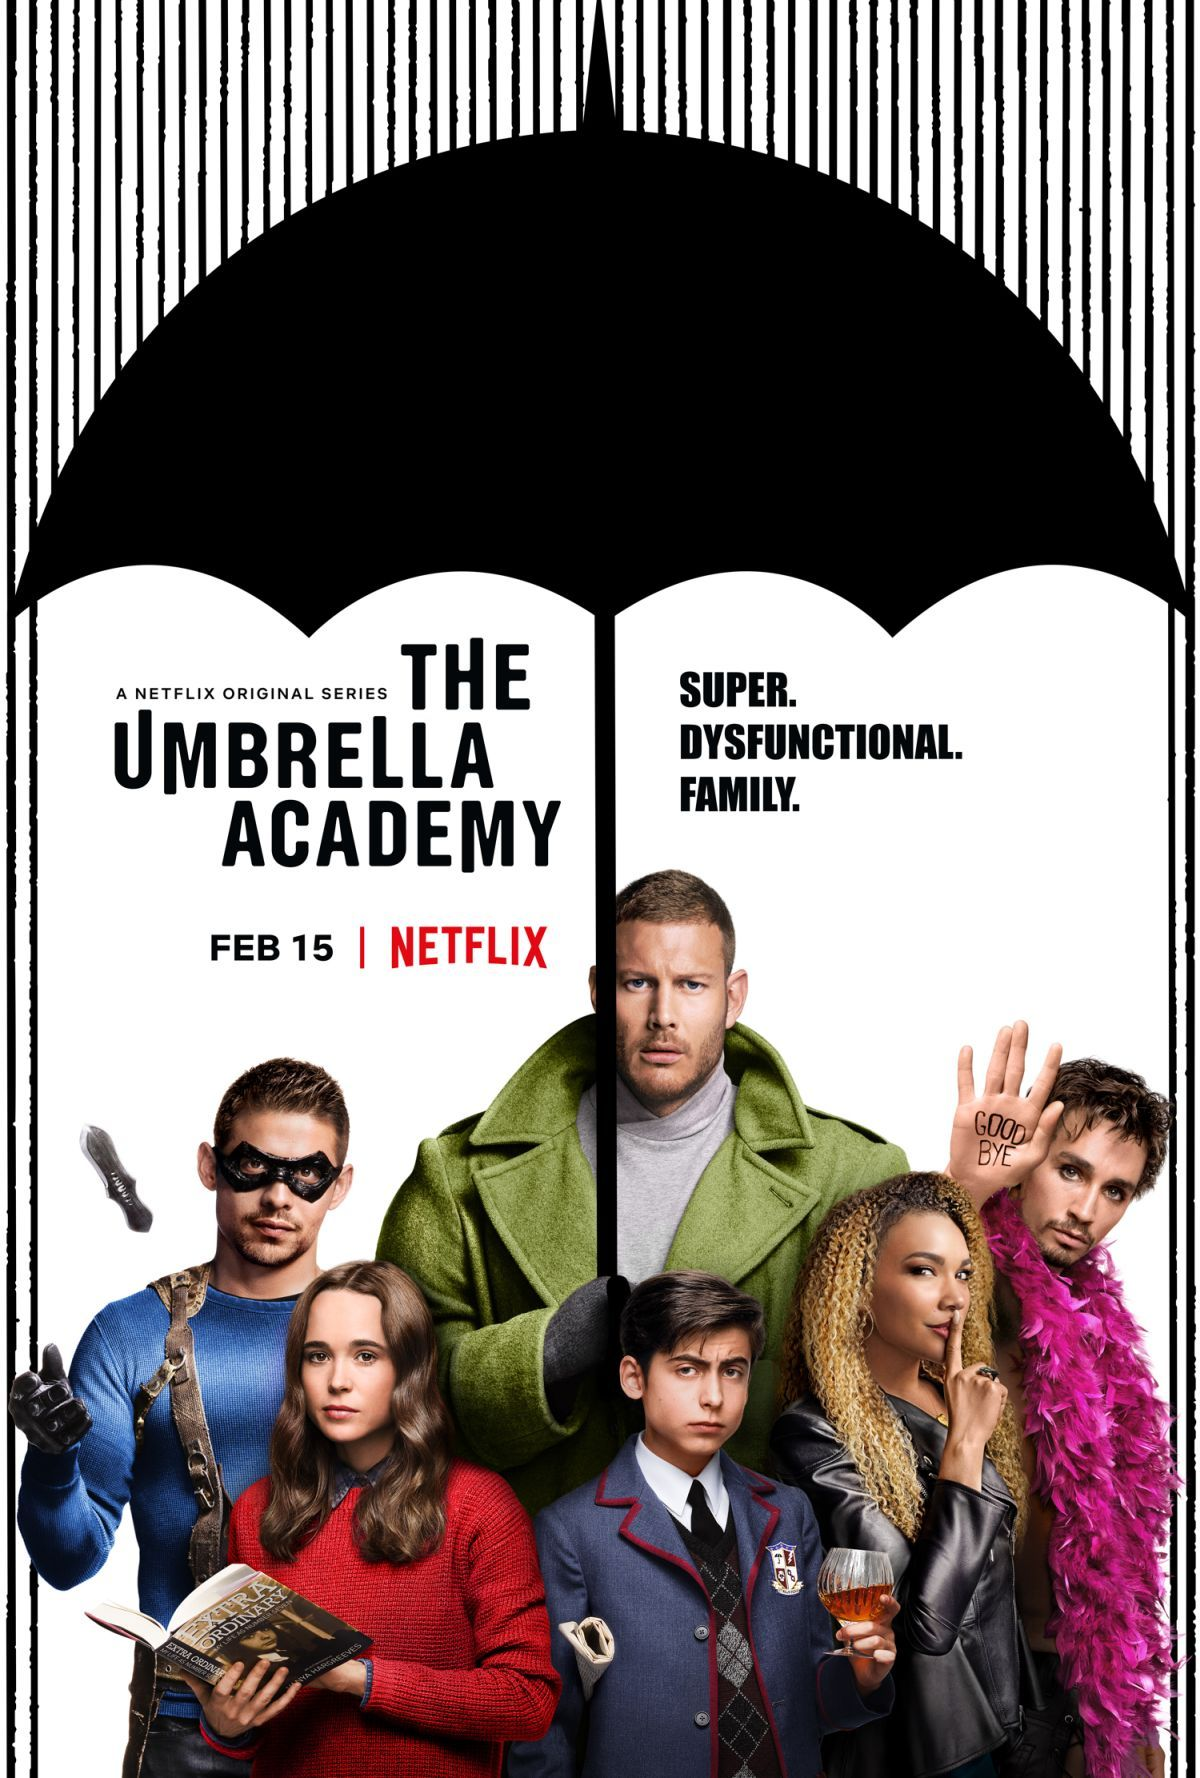 The Umbrella Academy S01 E10 Cut